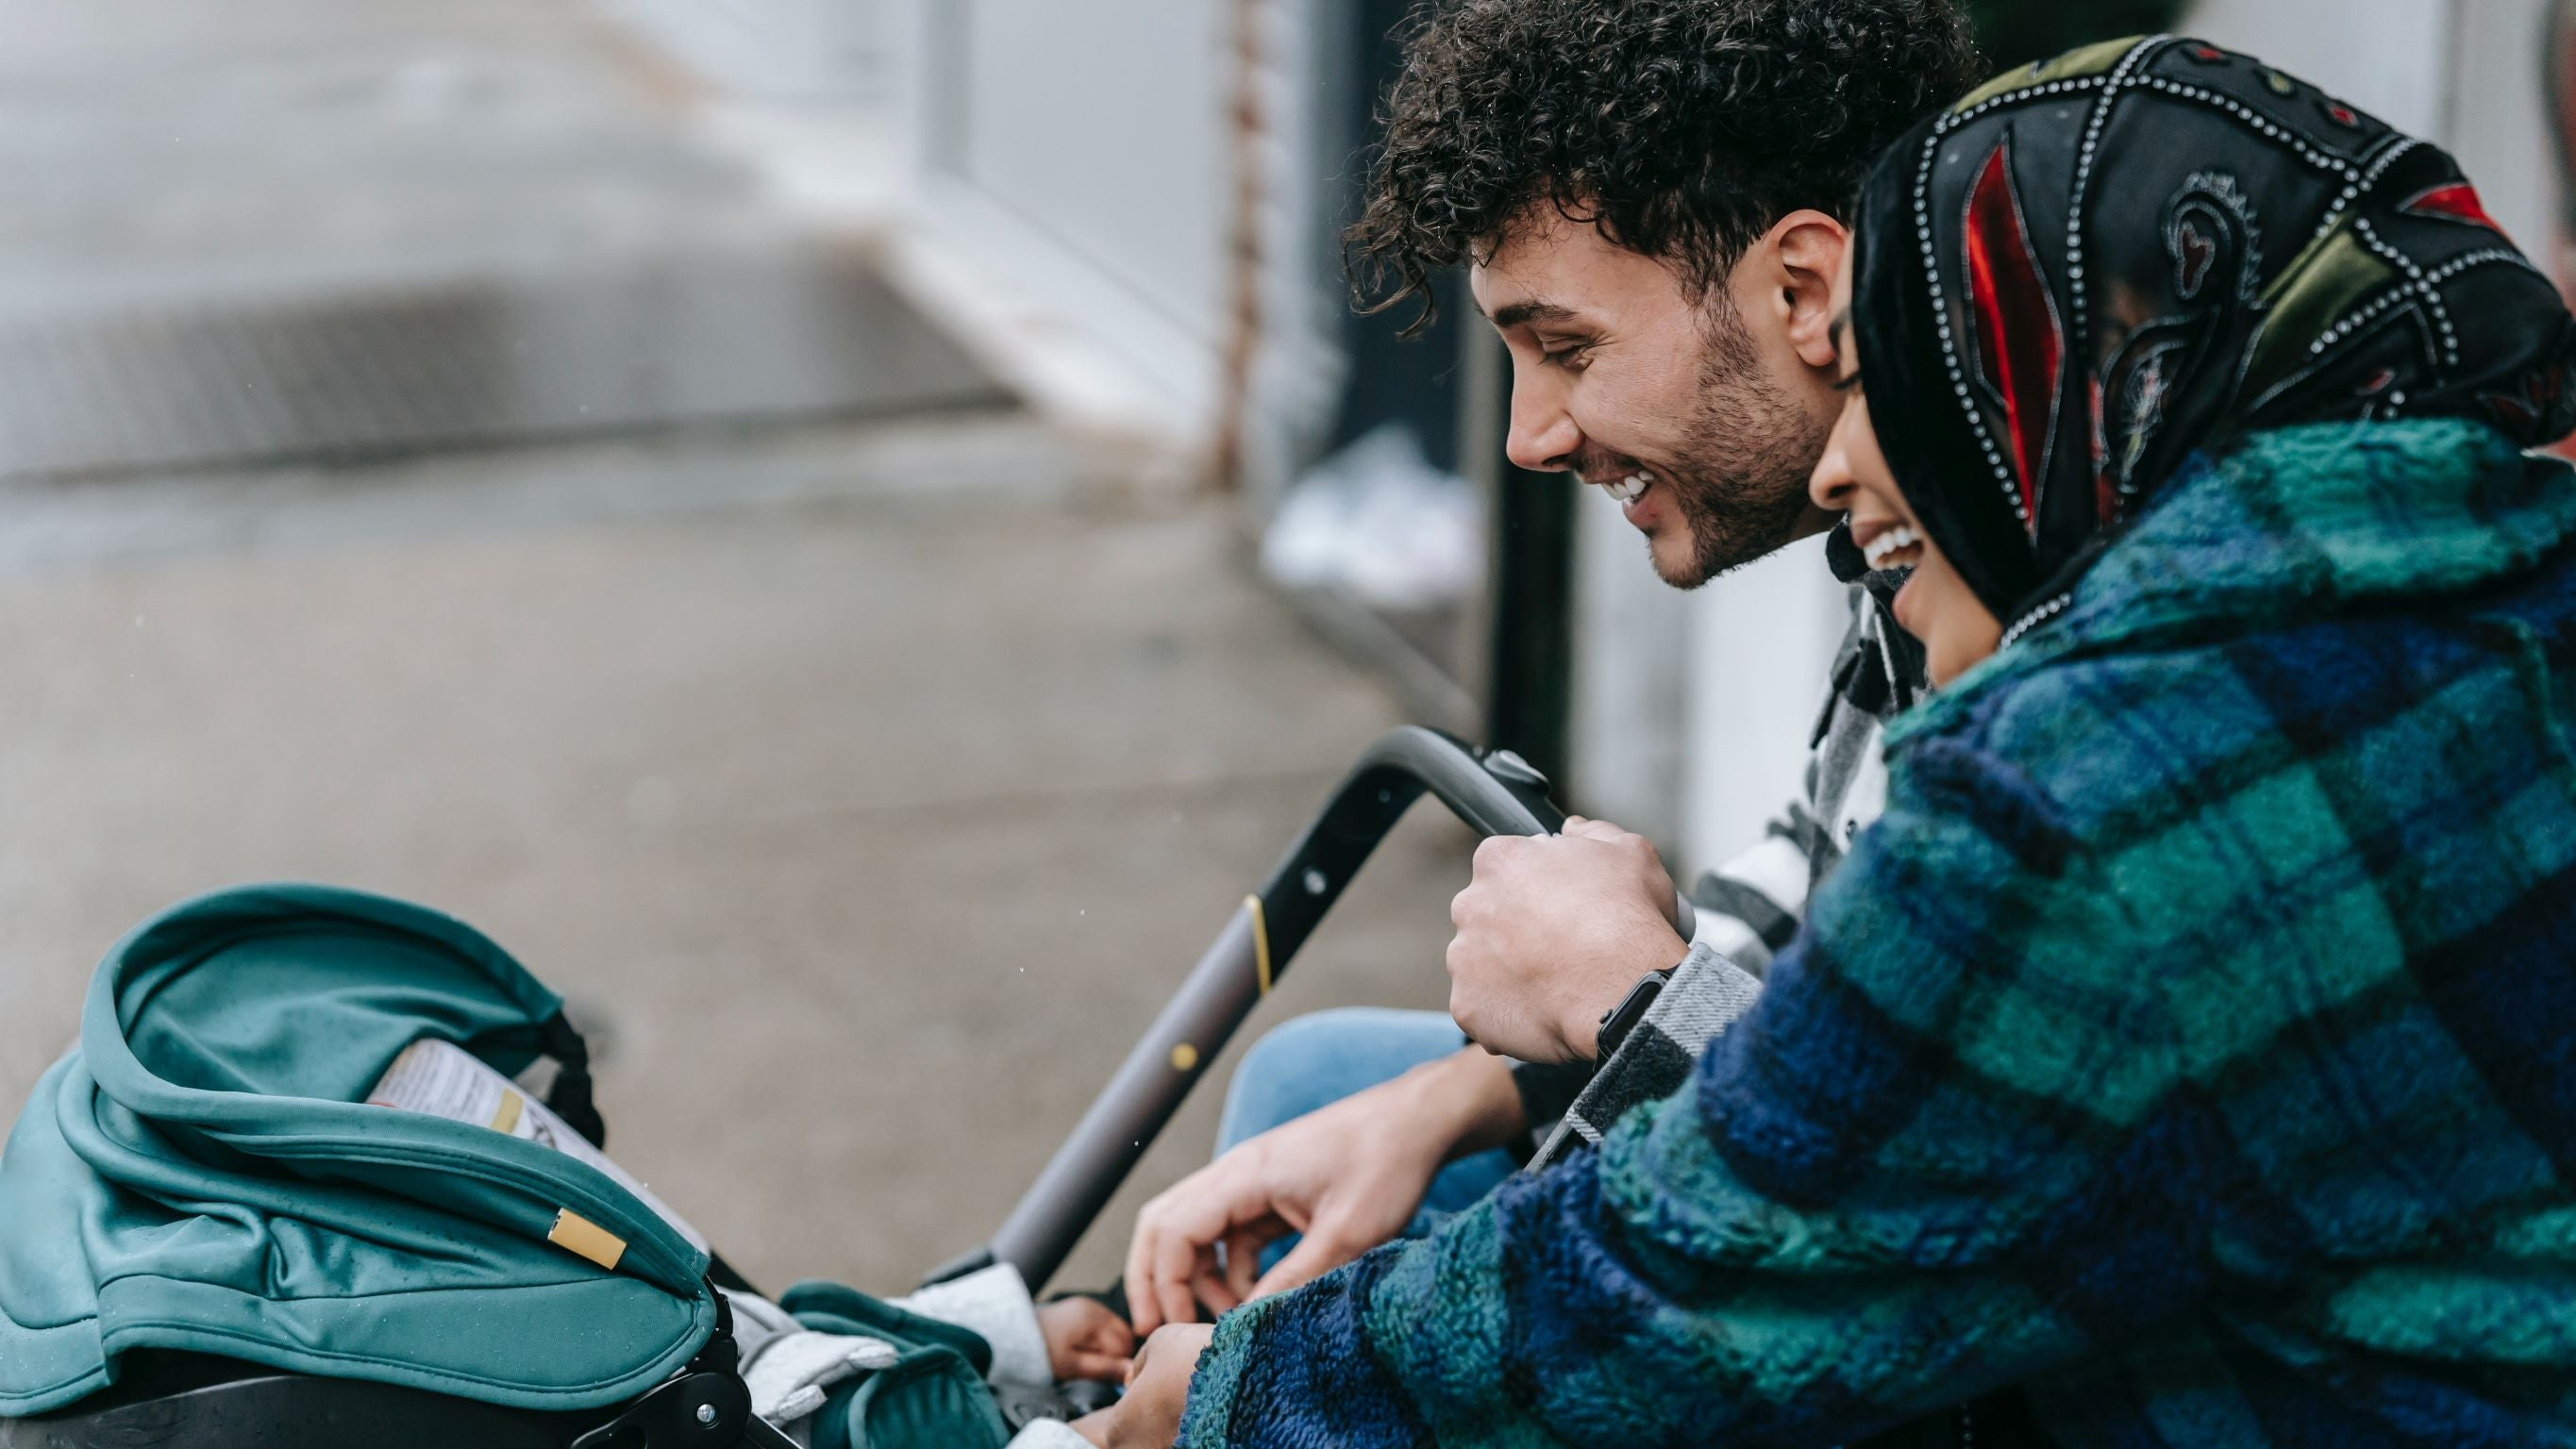 woman and man looking into stroller